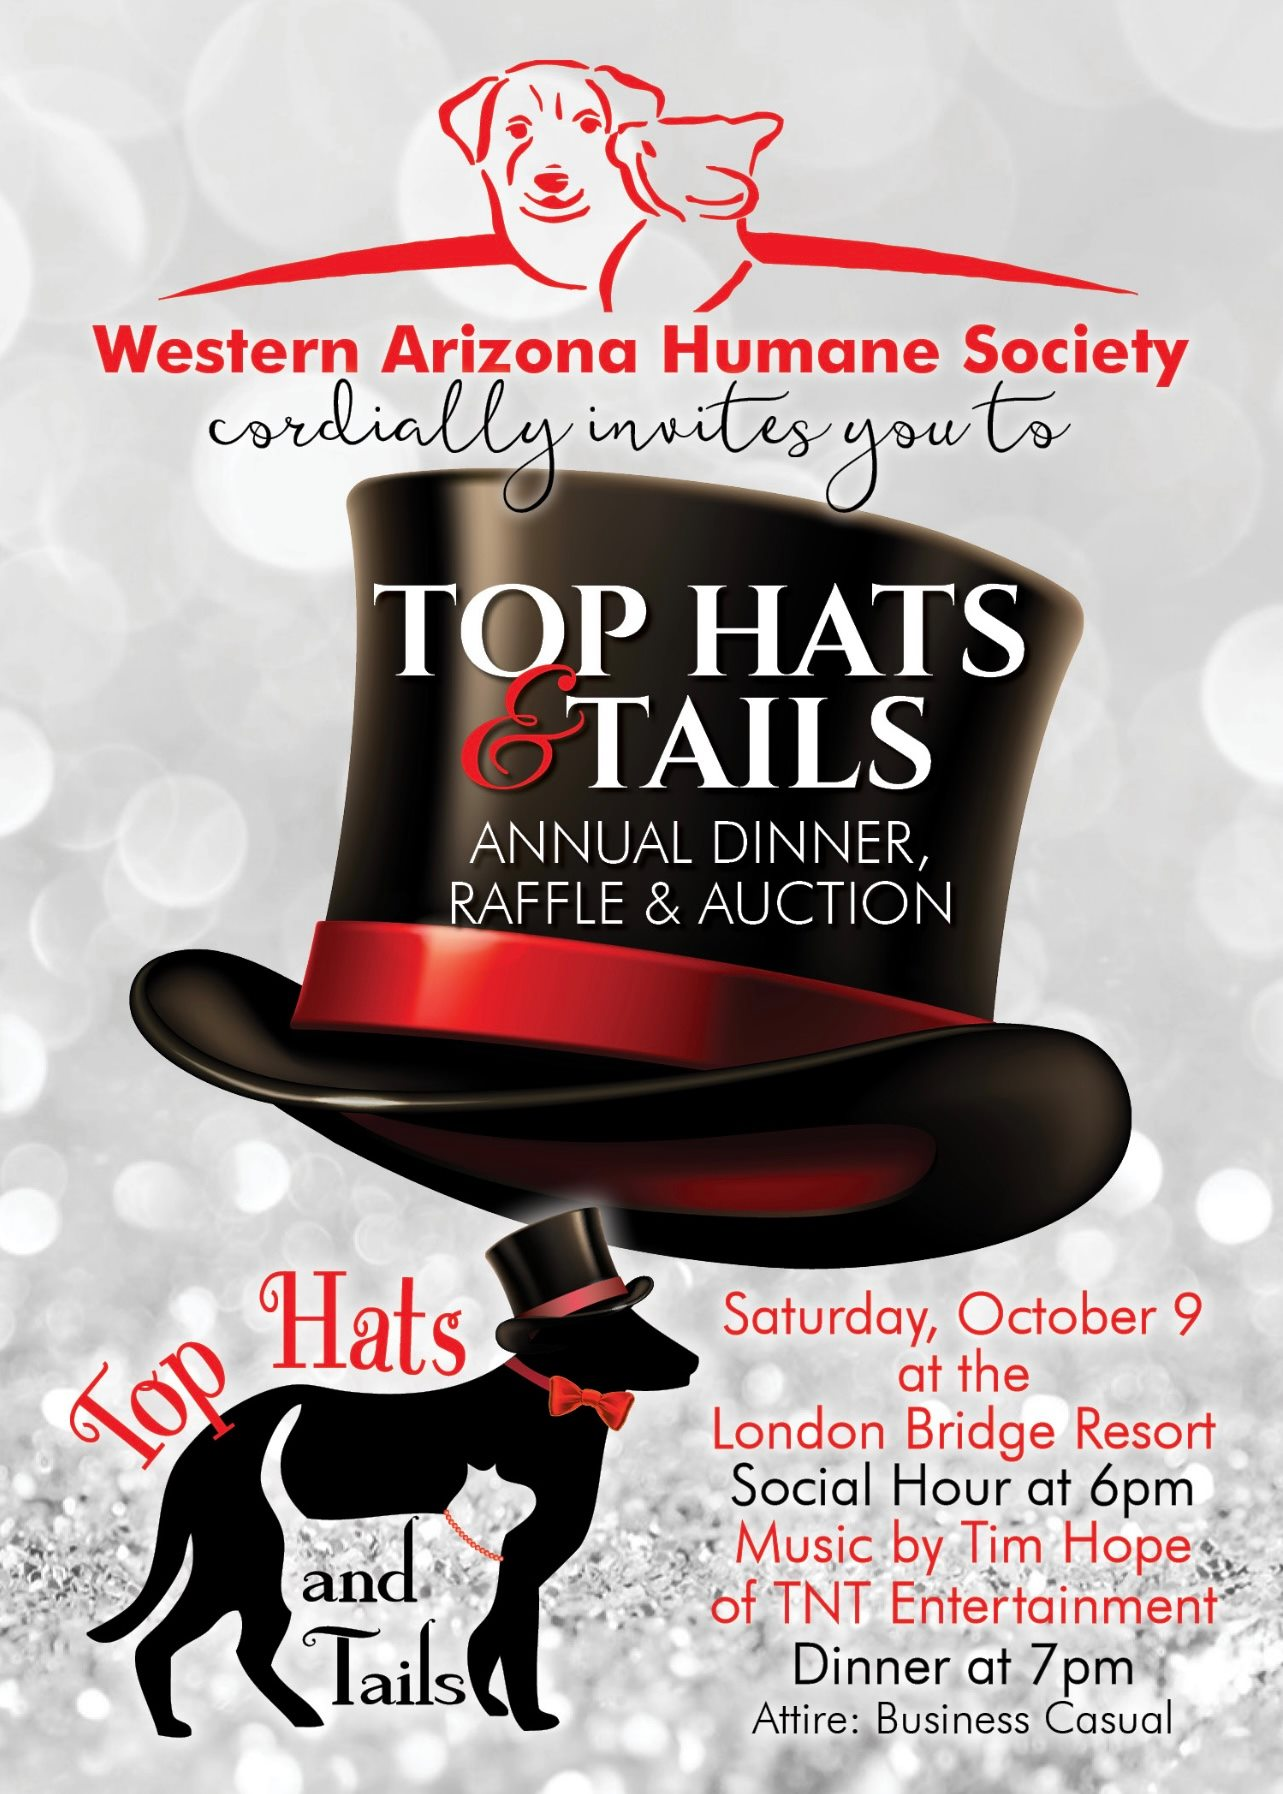 Top Hats And Tails Annual Dinner, Raffle And Auction